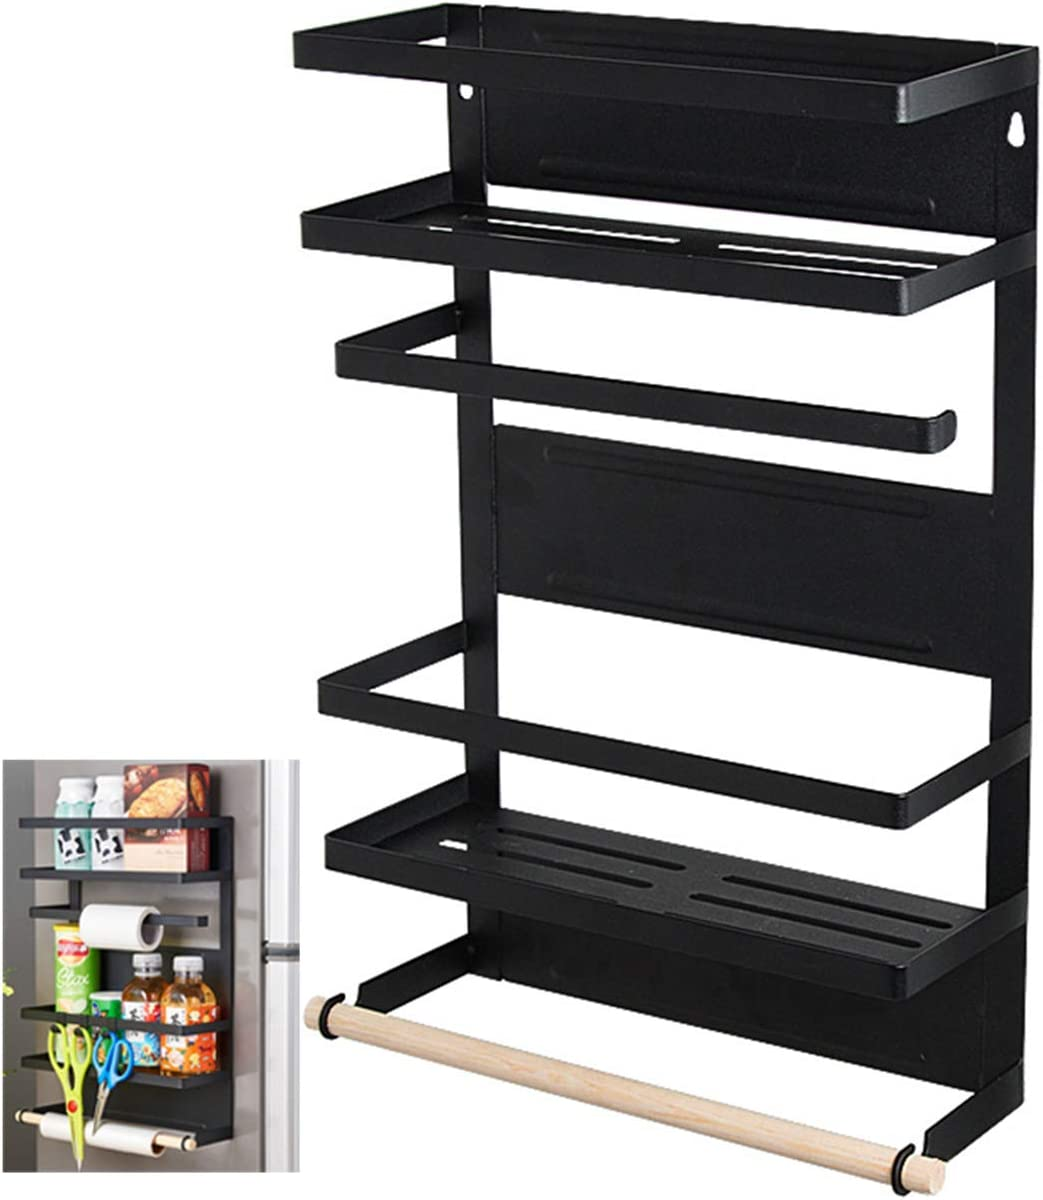 Magnetic Rack Refrigerator-Organizer Rustproof Spice Rack Storage (Black)